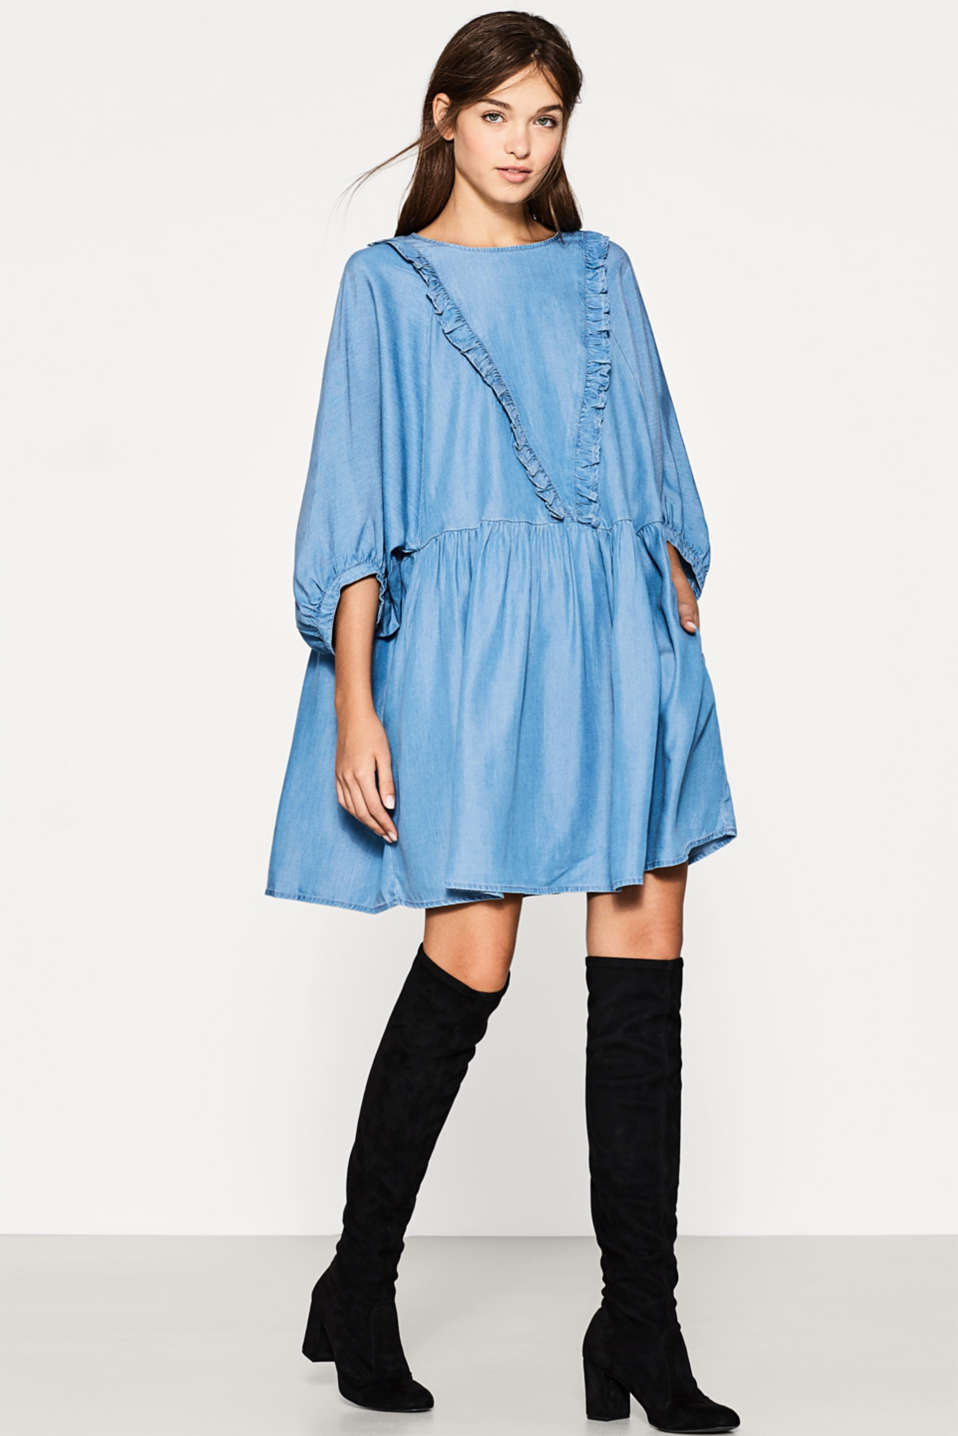 edc - Flowing denim dress with frills